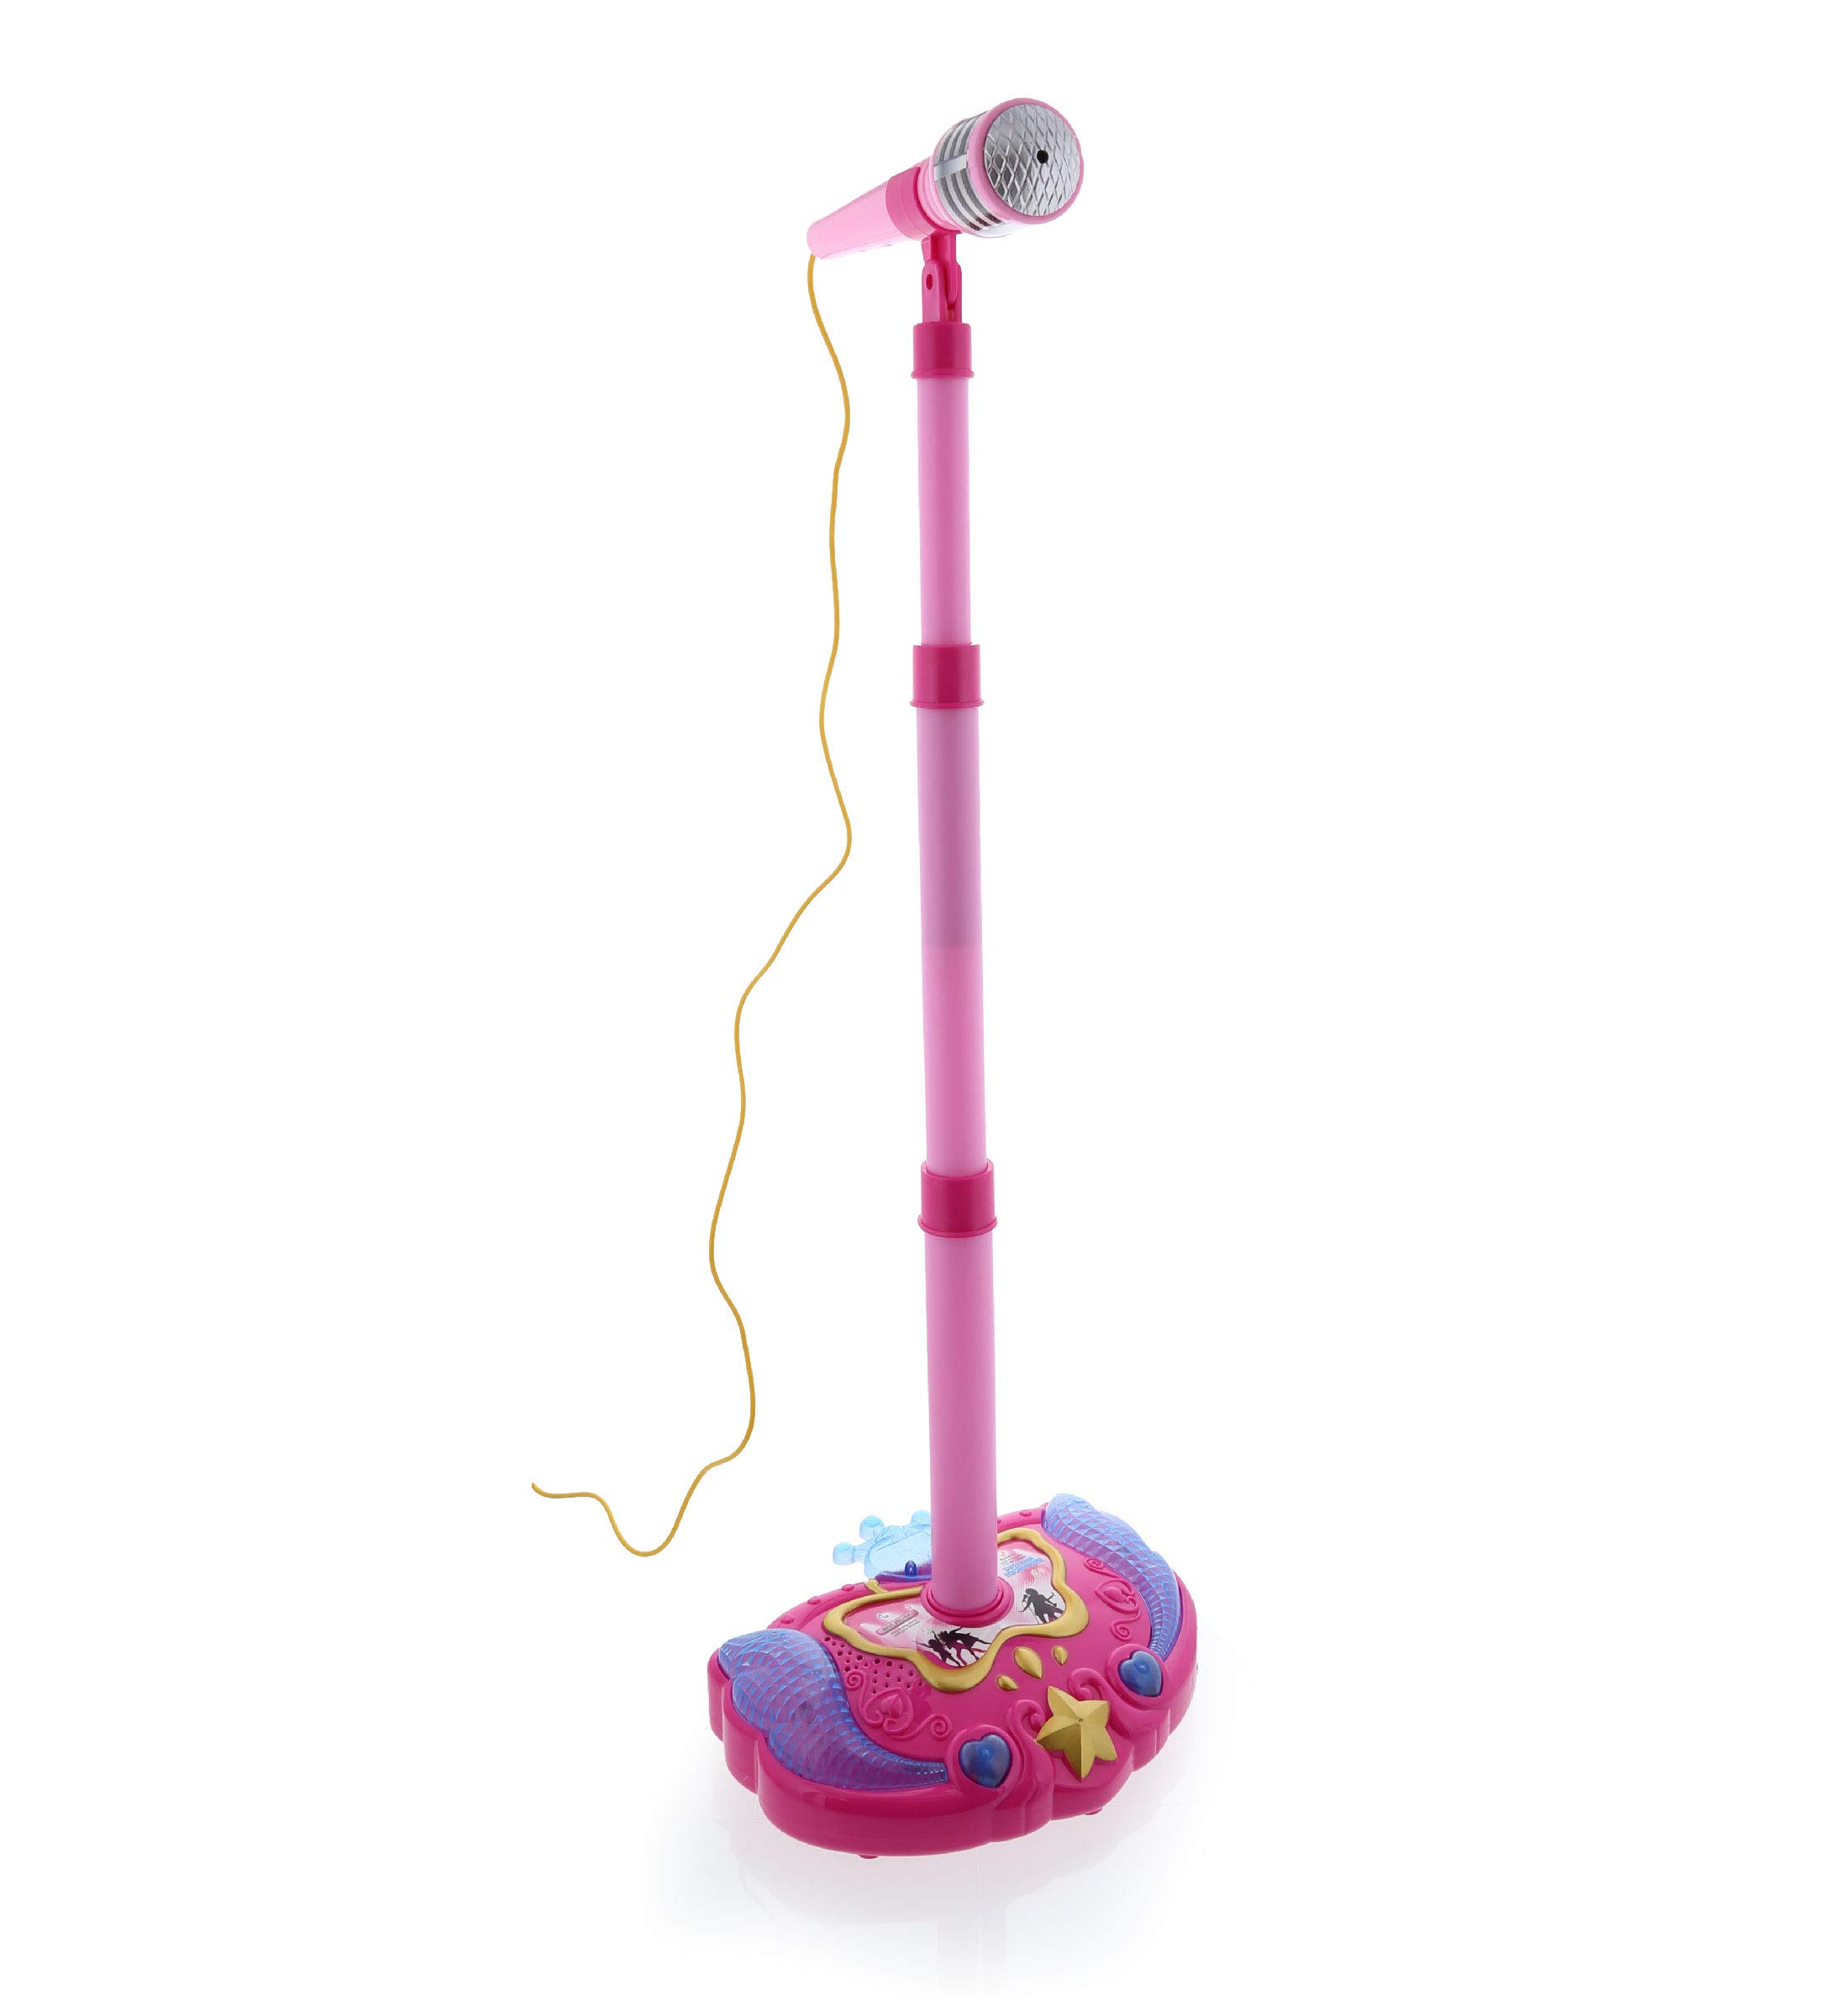 Karaoke Microphone Super Star Sing As If You Are a Star!!!(Color May Vary) by Lvnv Toys (Image #1)